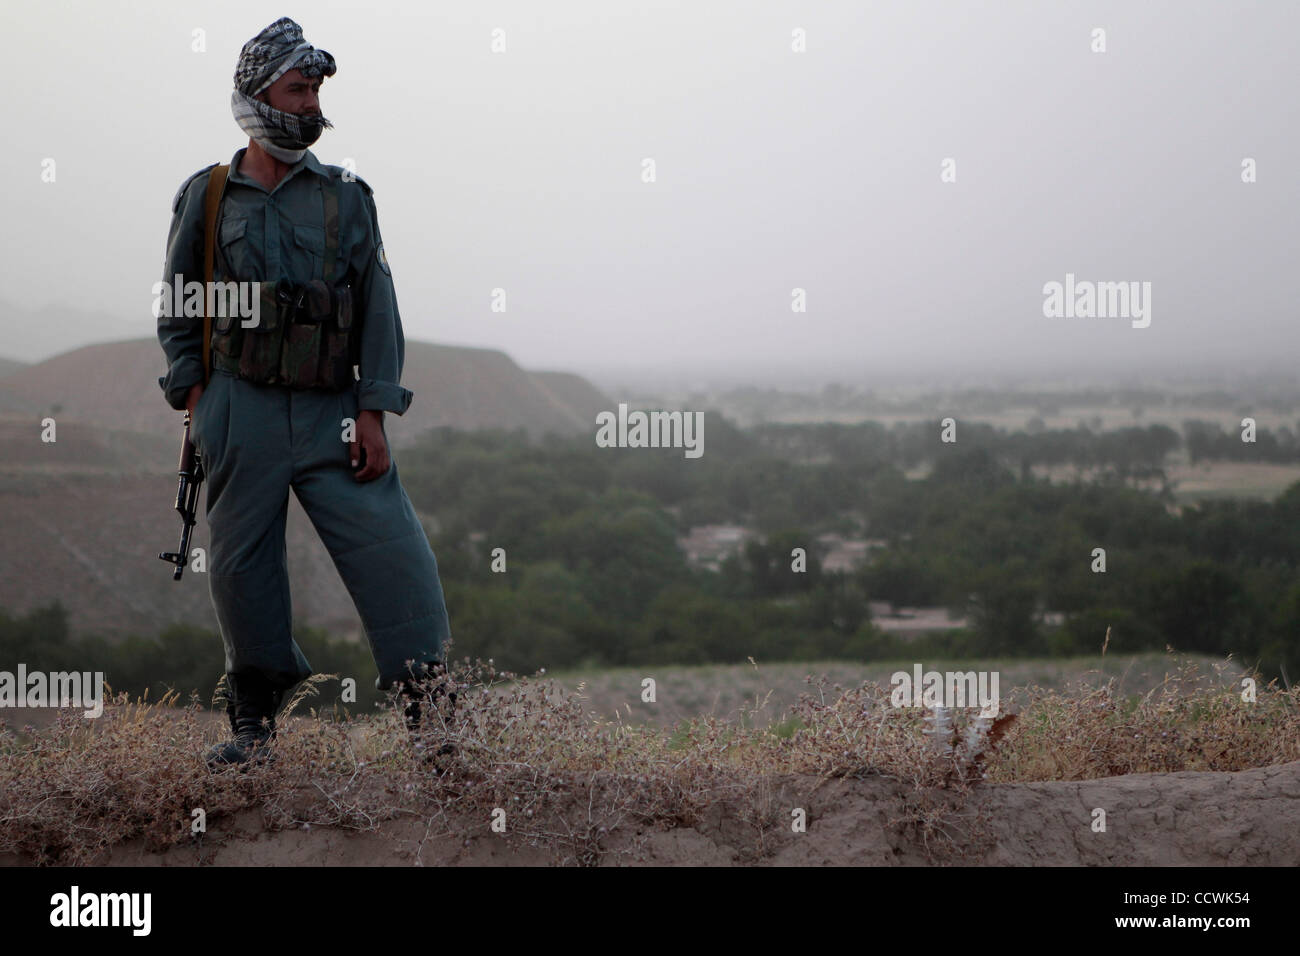 May 25, 2010 - Badghis Province, Afghanistan – An Afghan National Police soldier secures what will become Observation Stock Photo